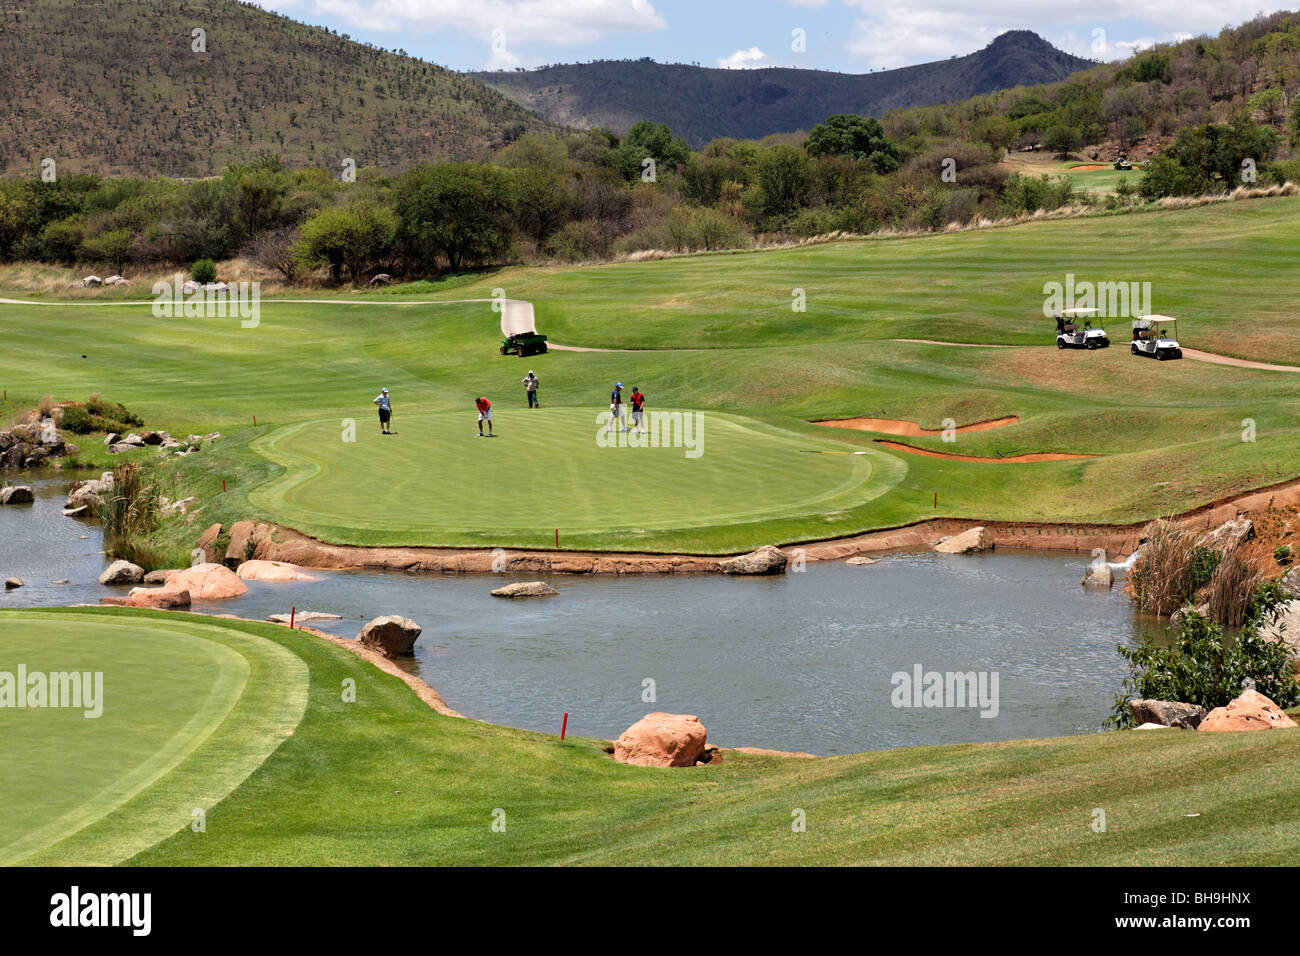 playing golf in johannesburg stock photos playing golf. Black Bedroom Furniture Sets. Home Design Ideas